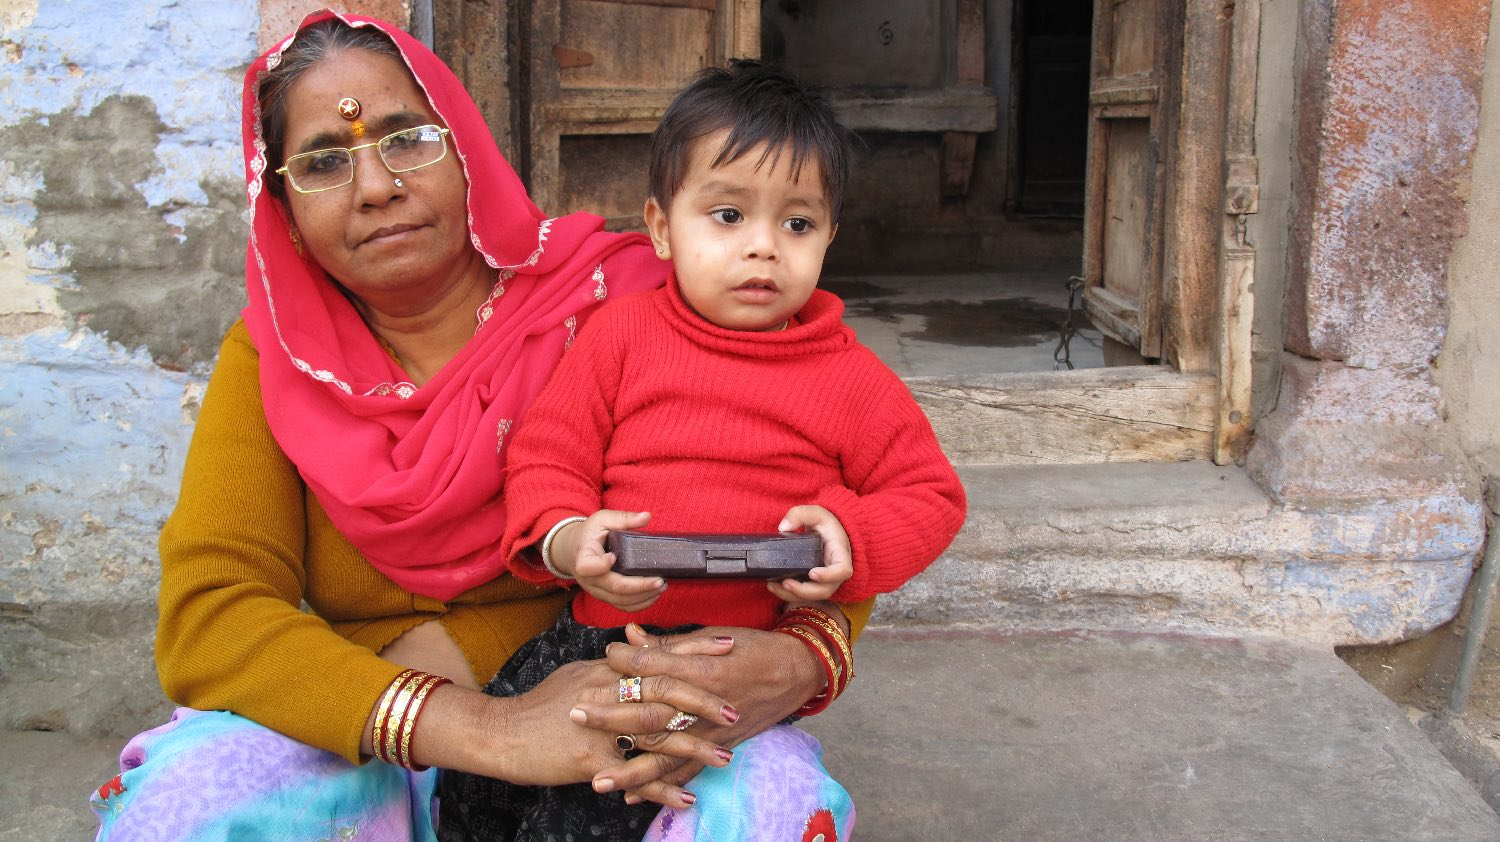 Jodphur 42 | Blue city | Rajasthan | Indian woman with child |©sandrine cohen